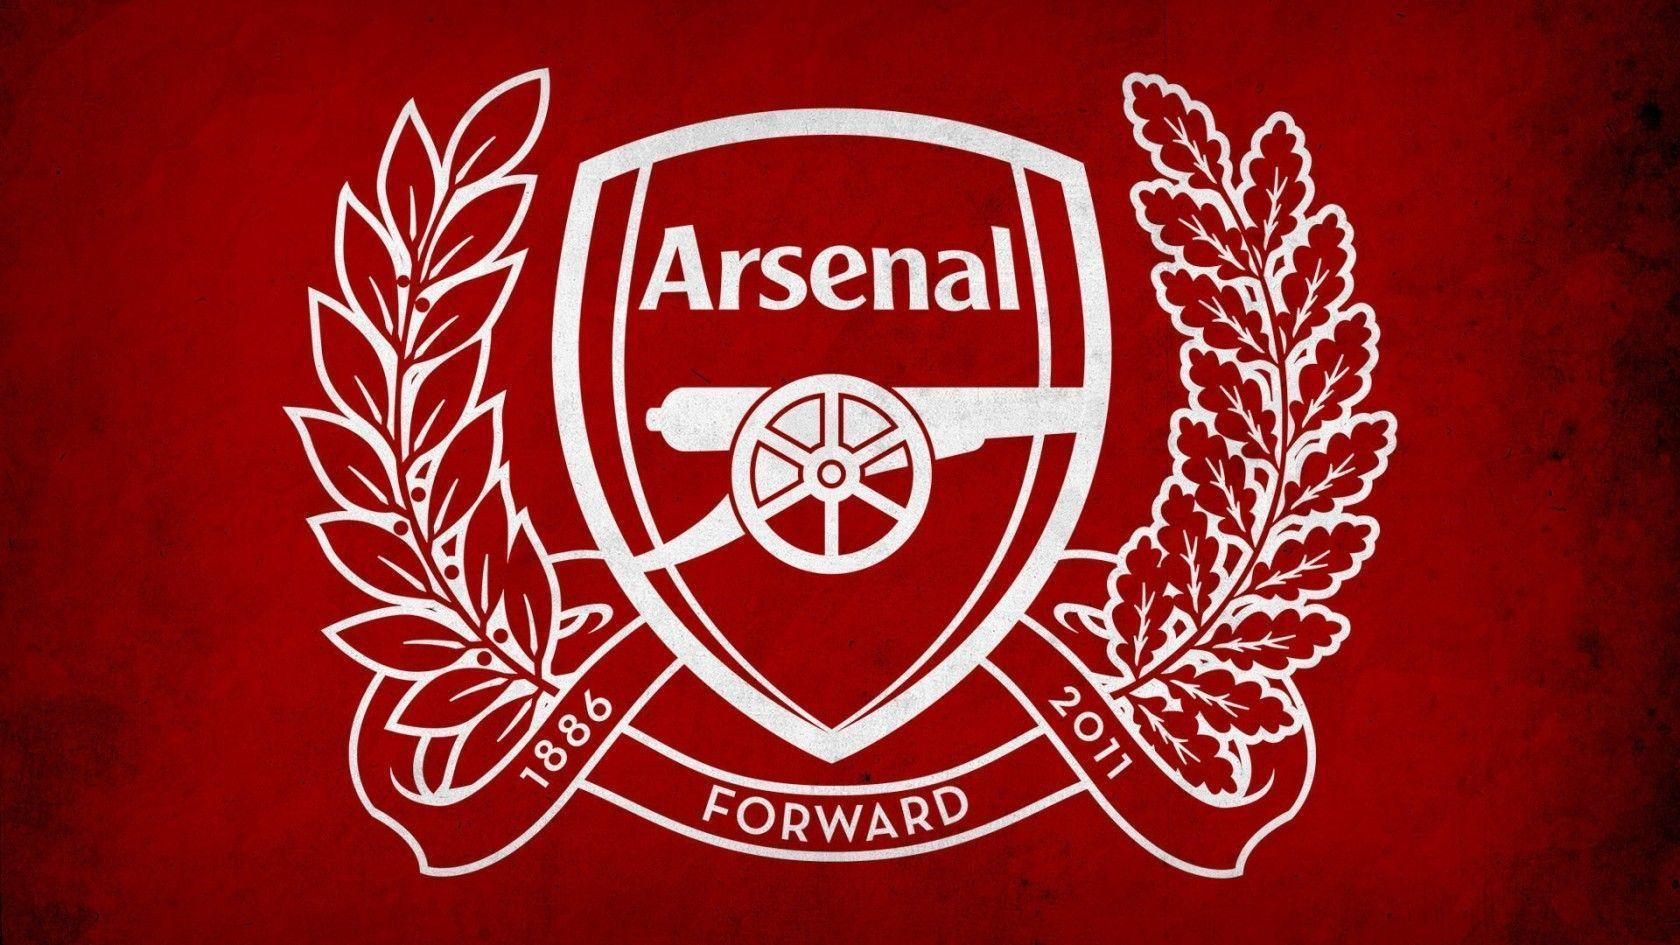 2015 Arsenal HD Wallpapers